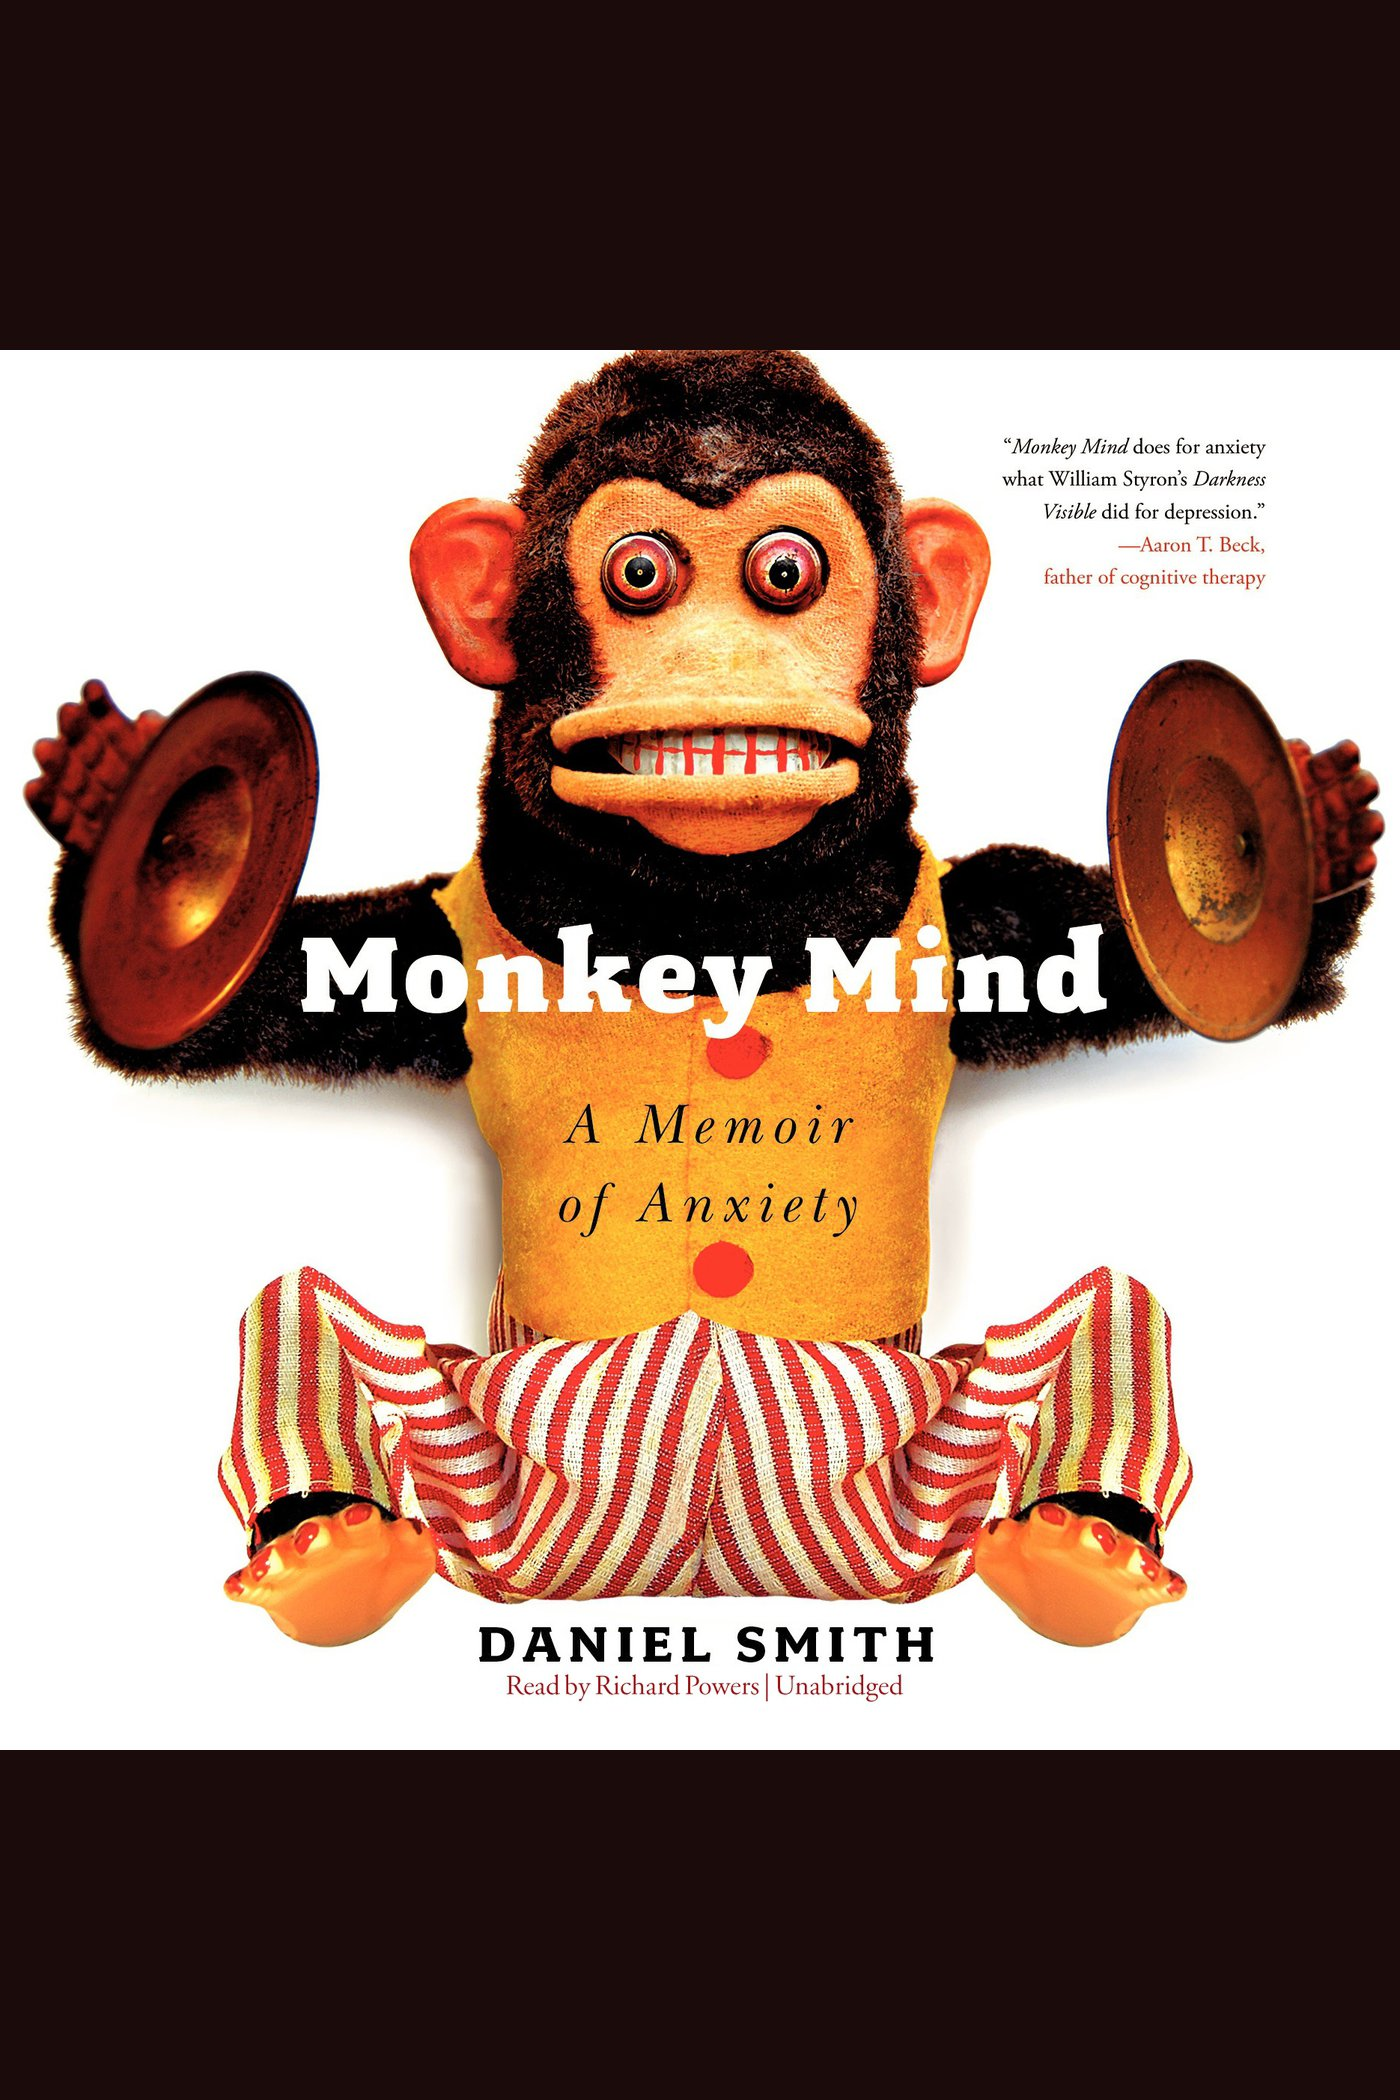 Monkey Mind A Memoir of Anxiety